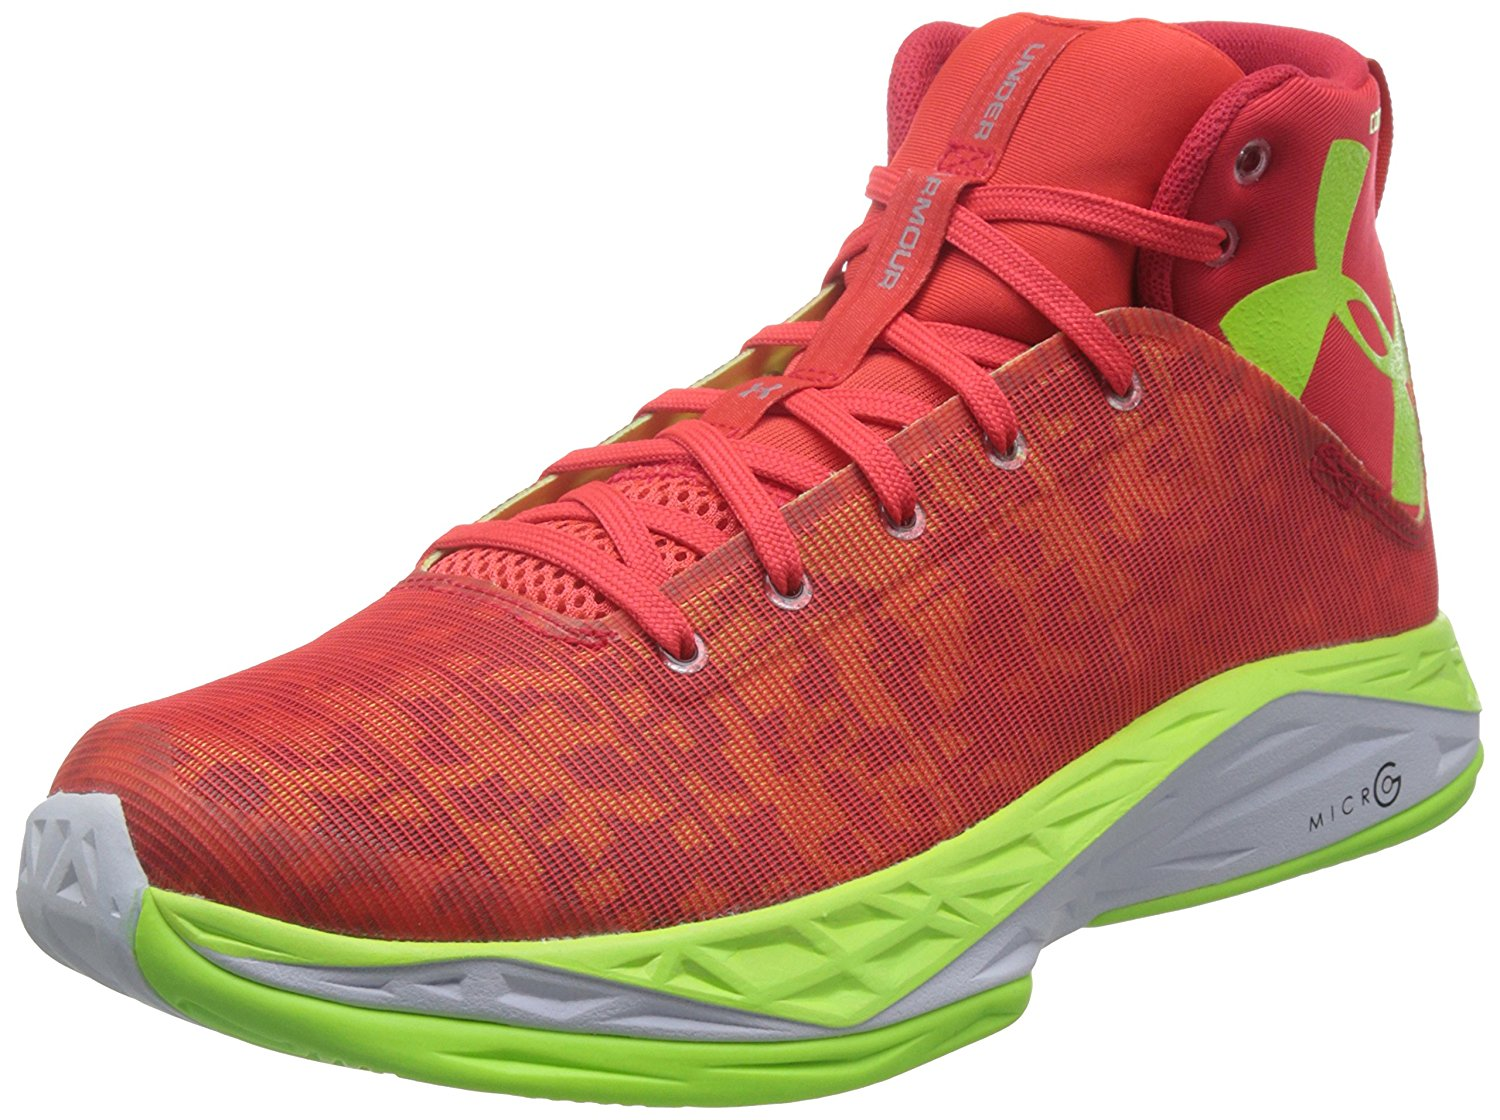 1473100ecdfc Get Quotations · Under Armour Men s UA Fireshot Basketball Shoes